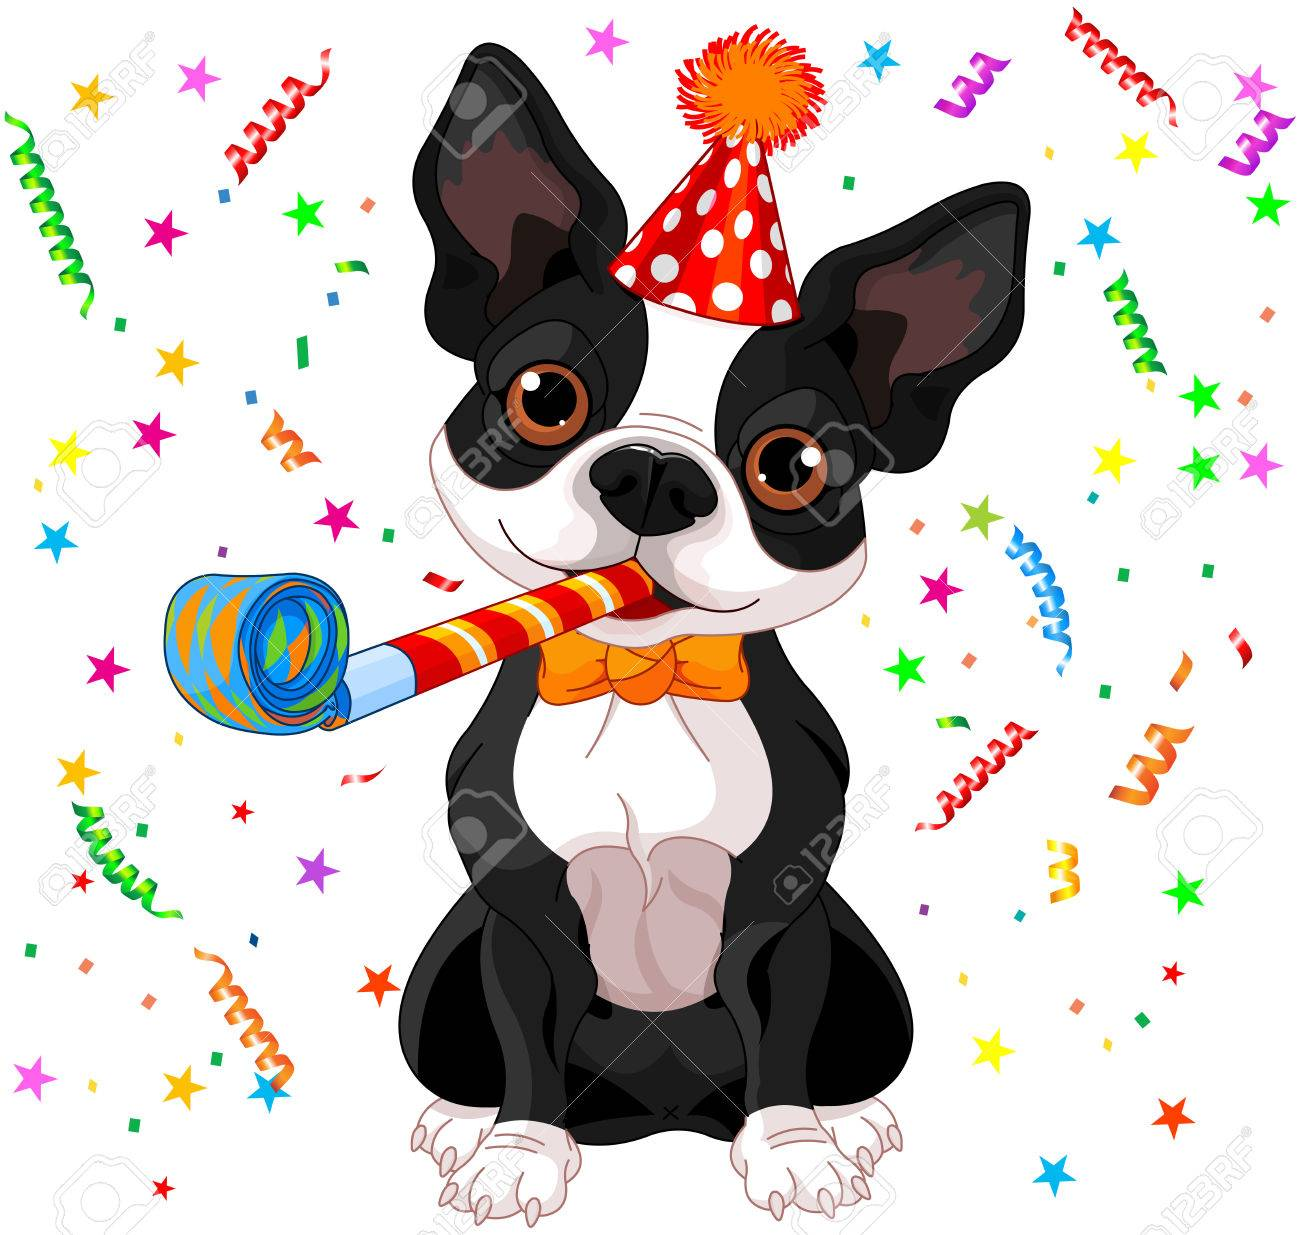 La méthode André Escafre - Page 20 35588778-illustration-of-cute-boston-terrier-celebrating